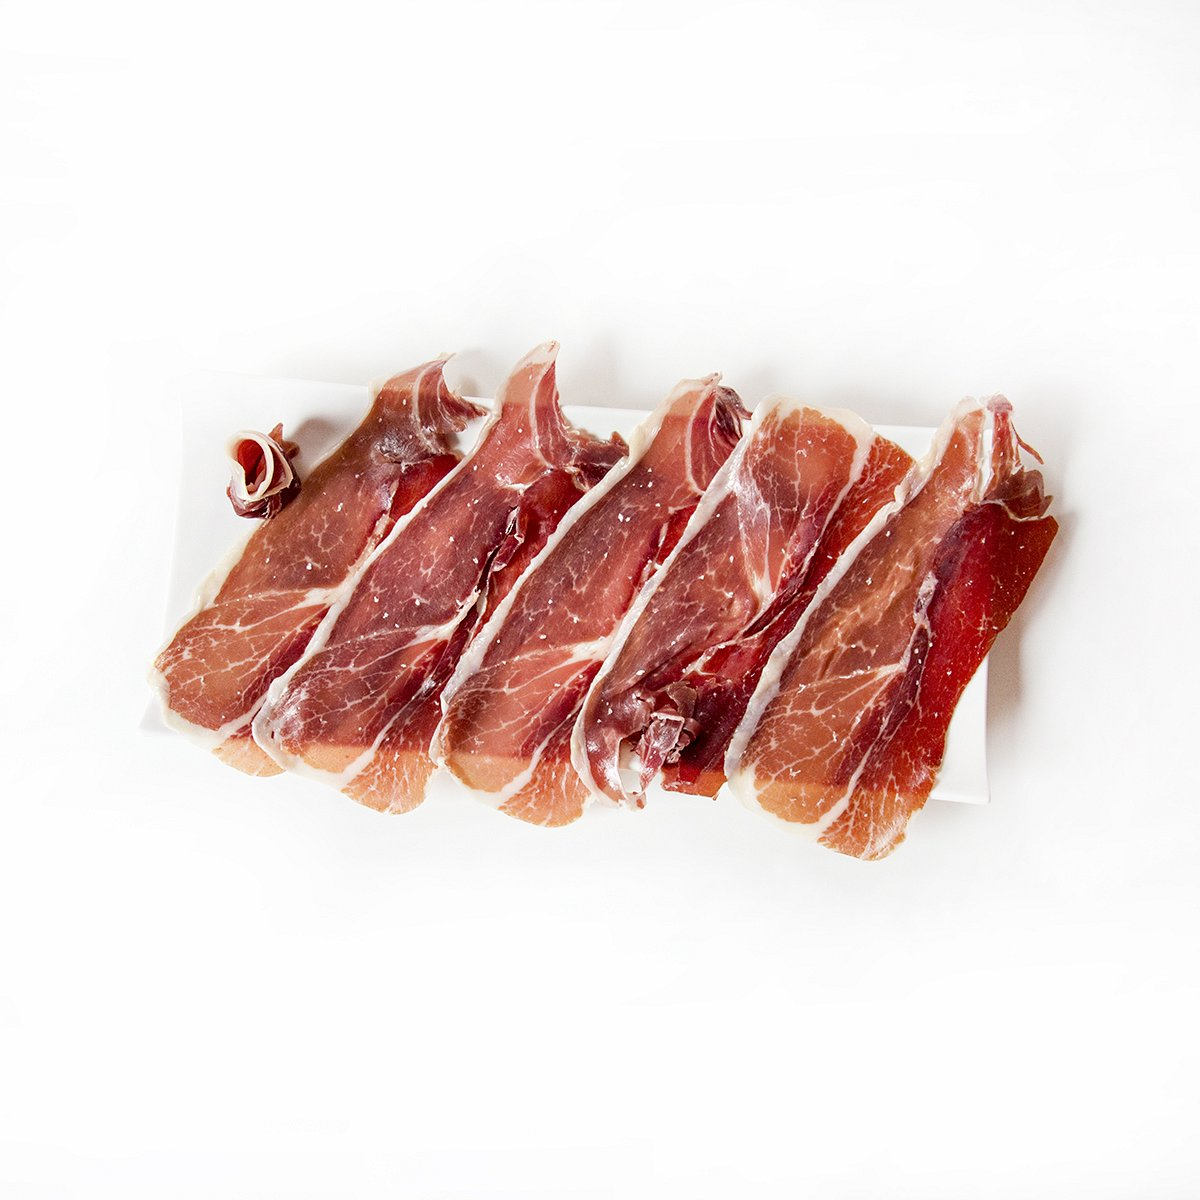 Fodder-Fed Iberian Ham - Sliced